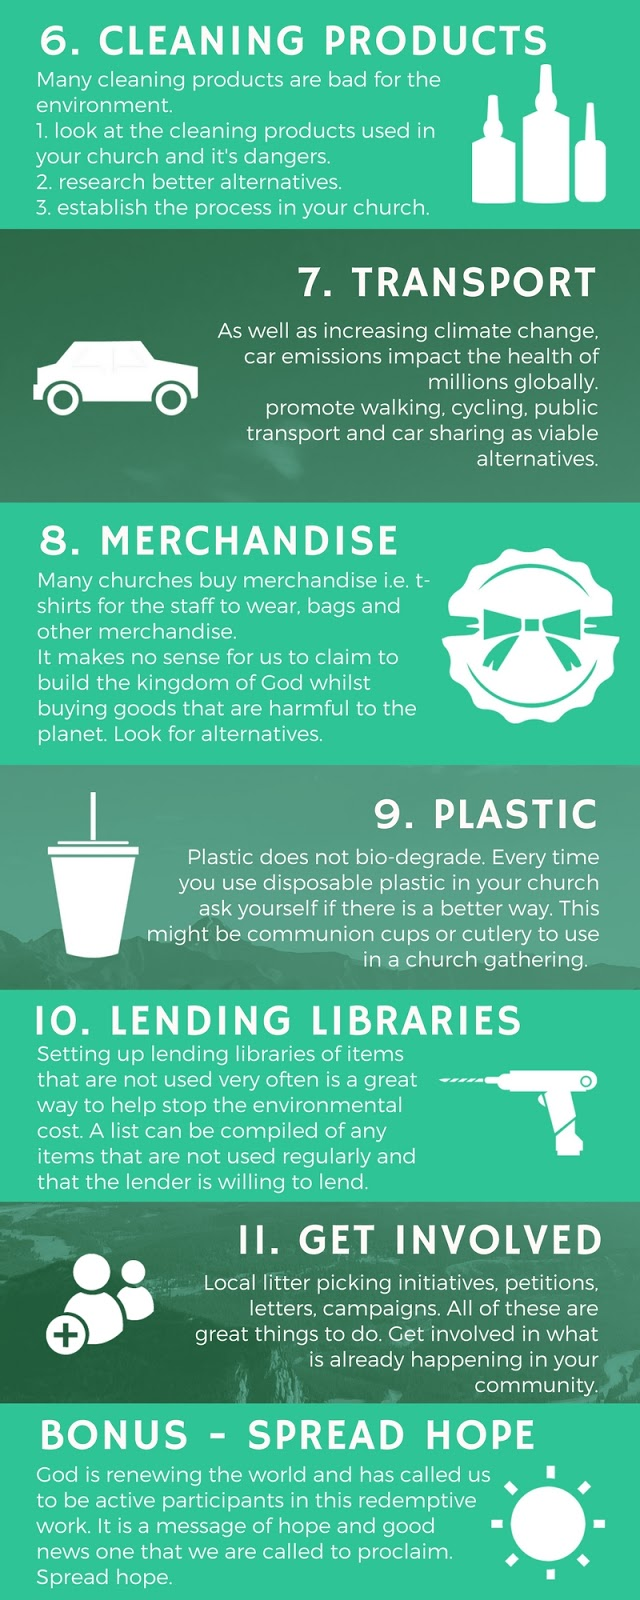 11 Ways To Make Your Church More Environmentally Friendly infographic Part 2